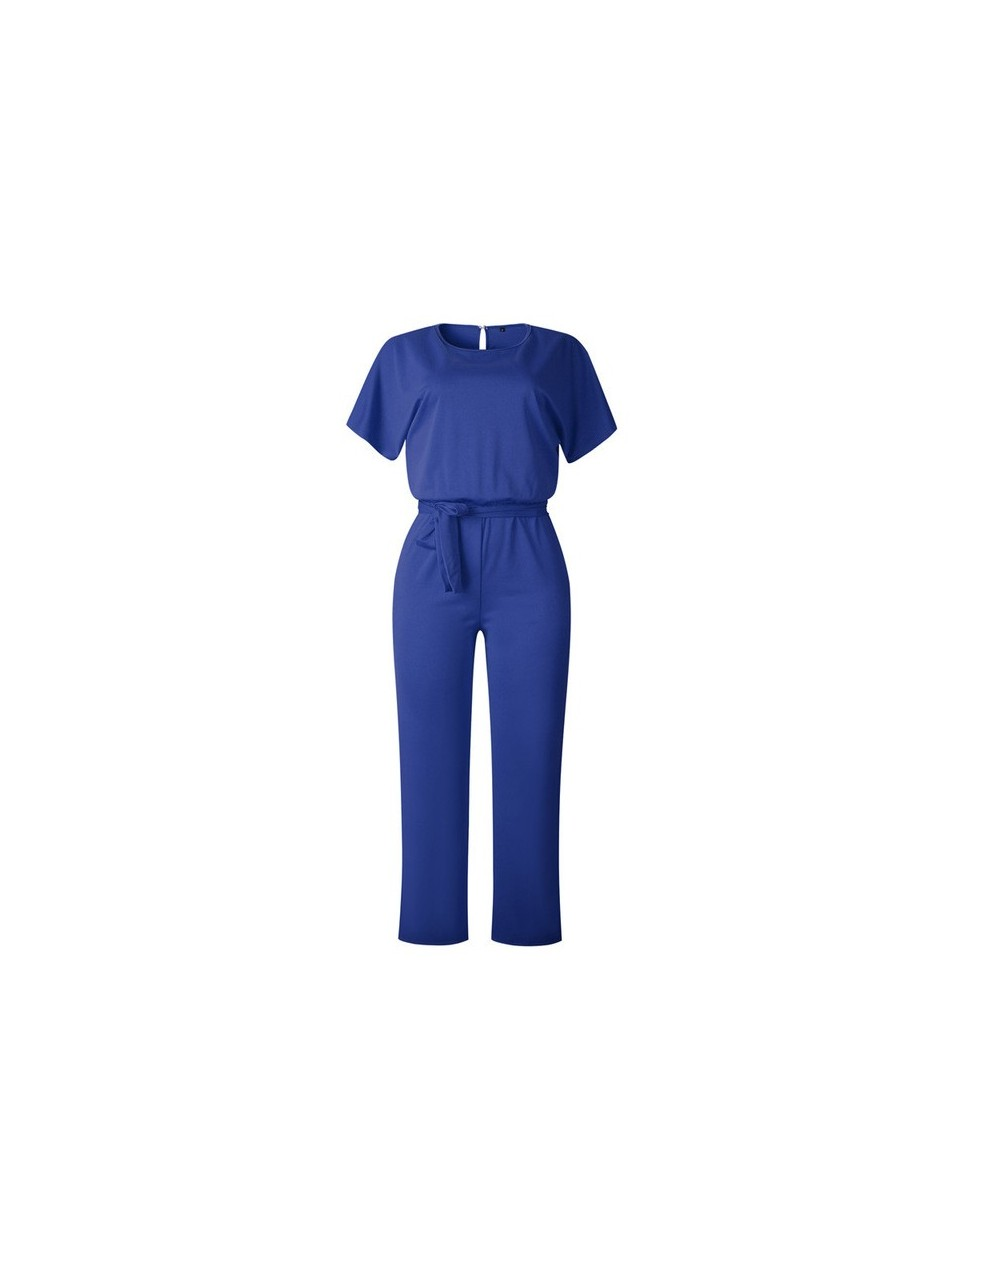 Summer Women Work Jumpsuits Casual O-Neck Sashes Loose Rompers Black Long Pants Female Streetwear Short Sleeve Jumpsuits - B...